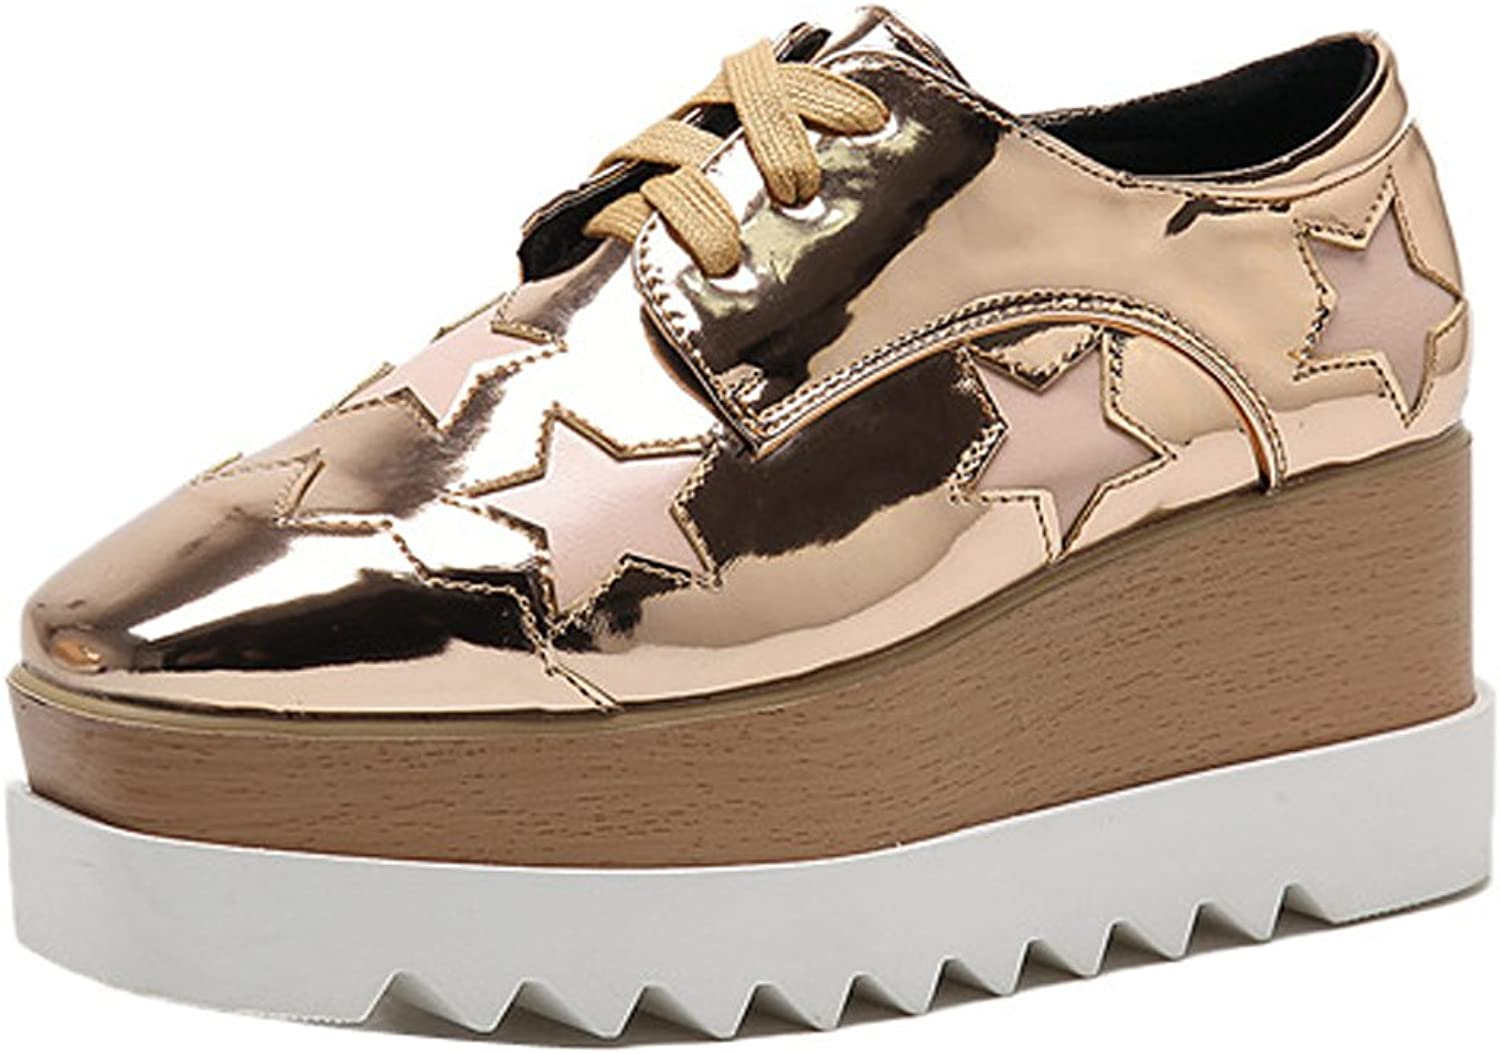 Ladola Womens Soft-Ground Waterproof Lace-Up Square-Toe Urethane Pumps shoes